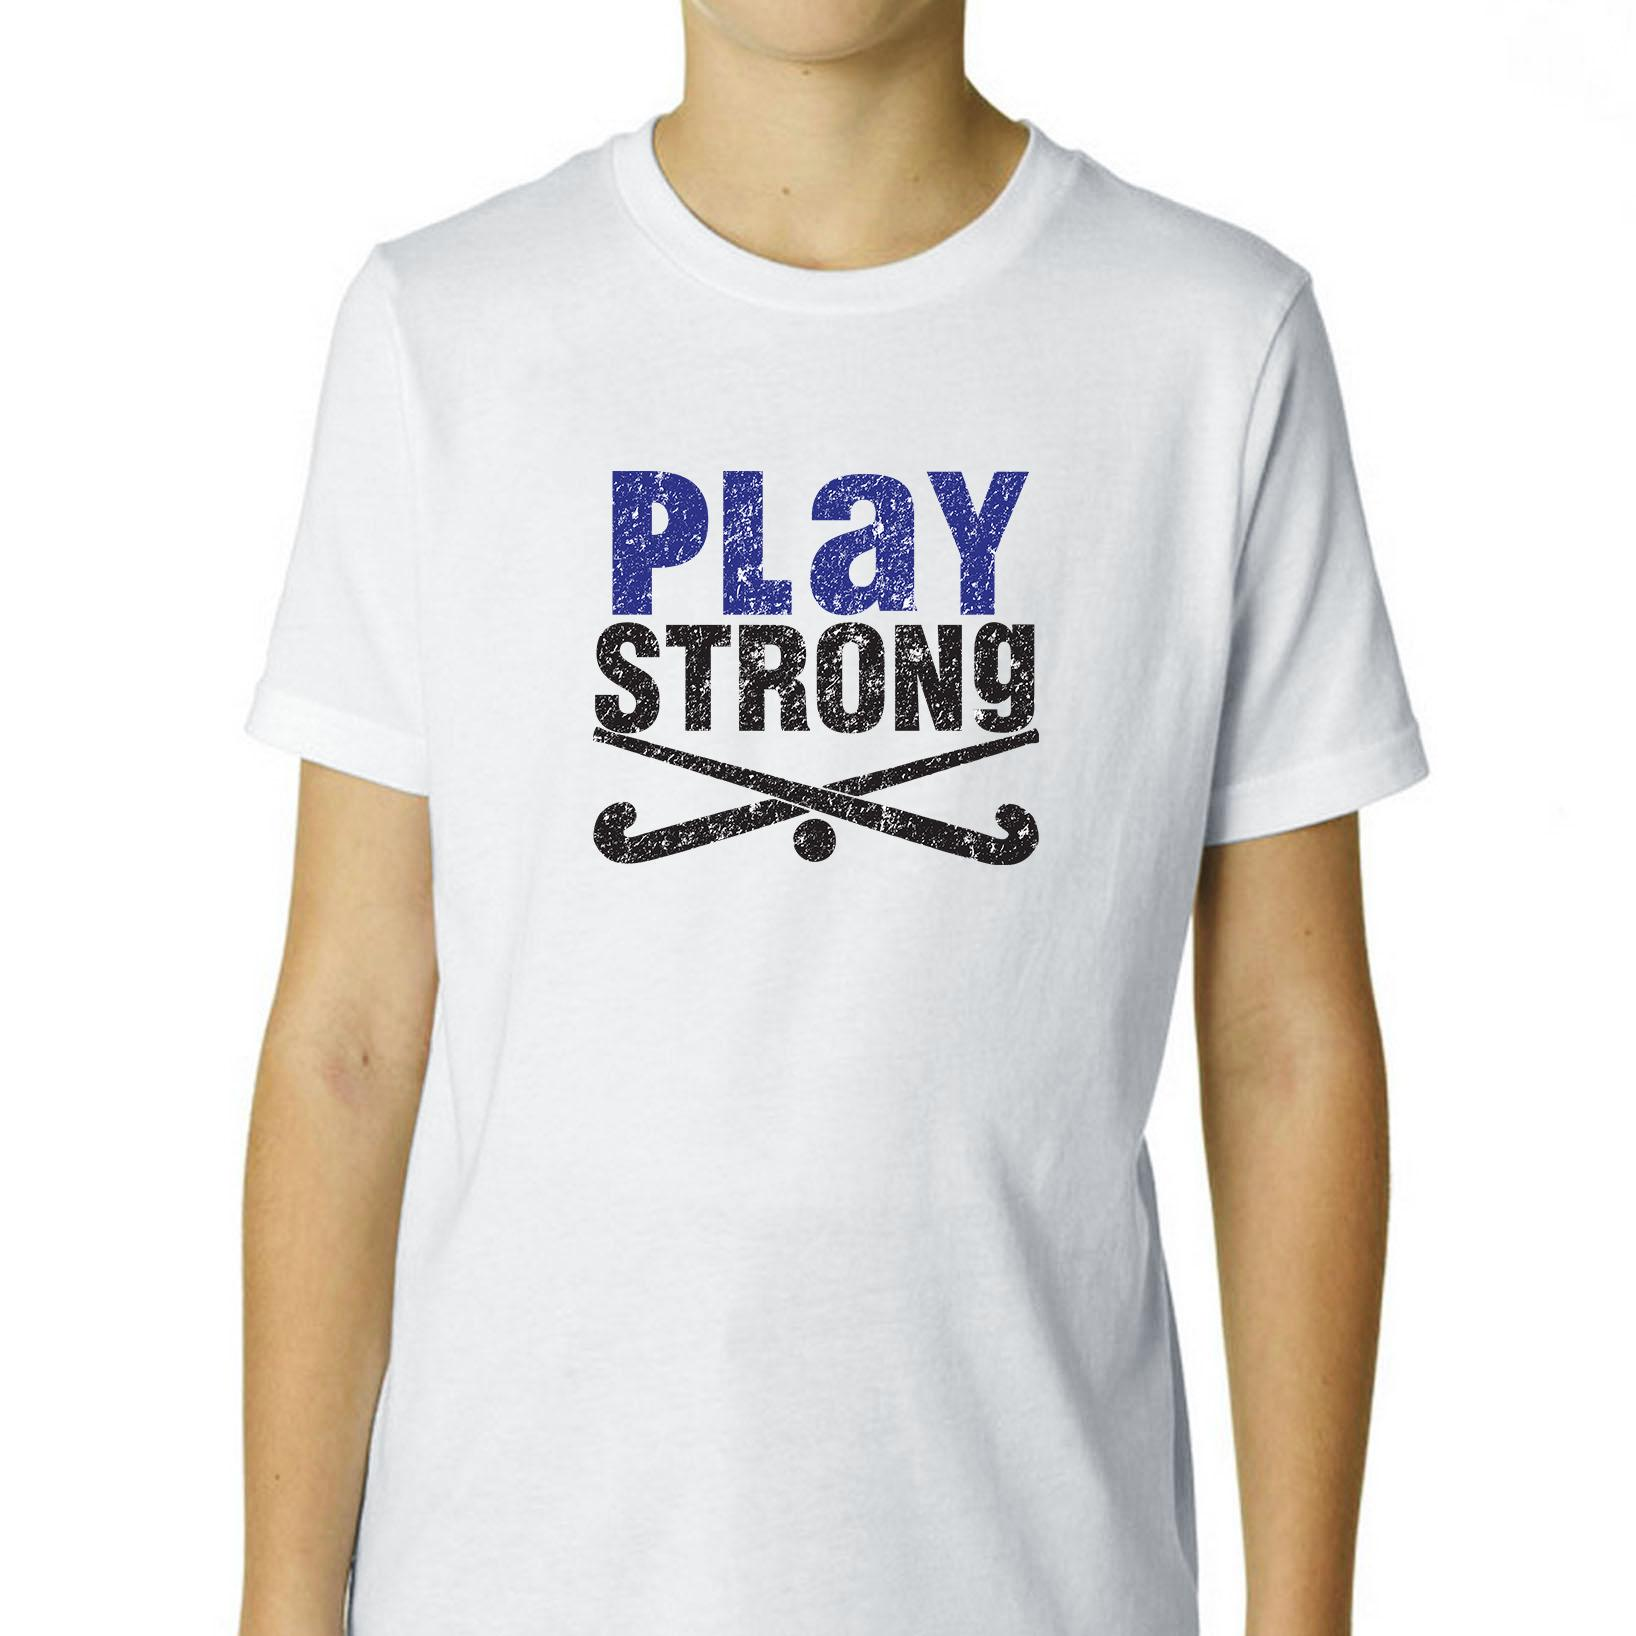 Field Hockey Play Strong Crossed Sticks Graphic Boy's Cotton Youth T-Shirt by Hollywood Thread